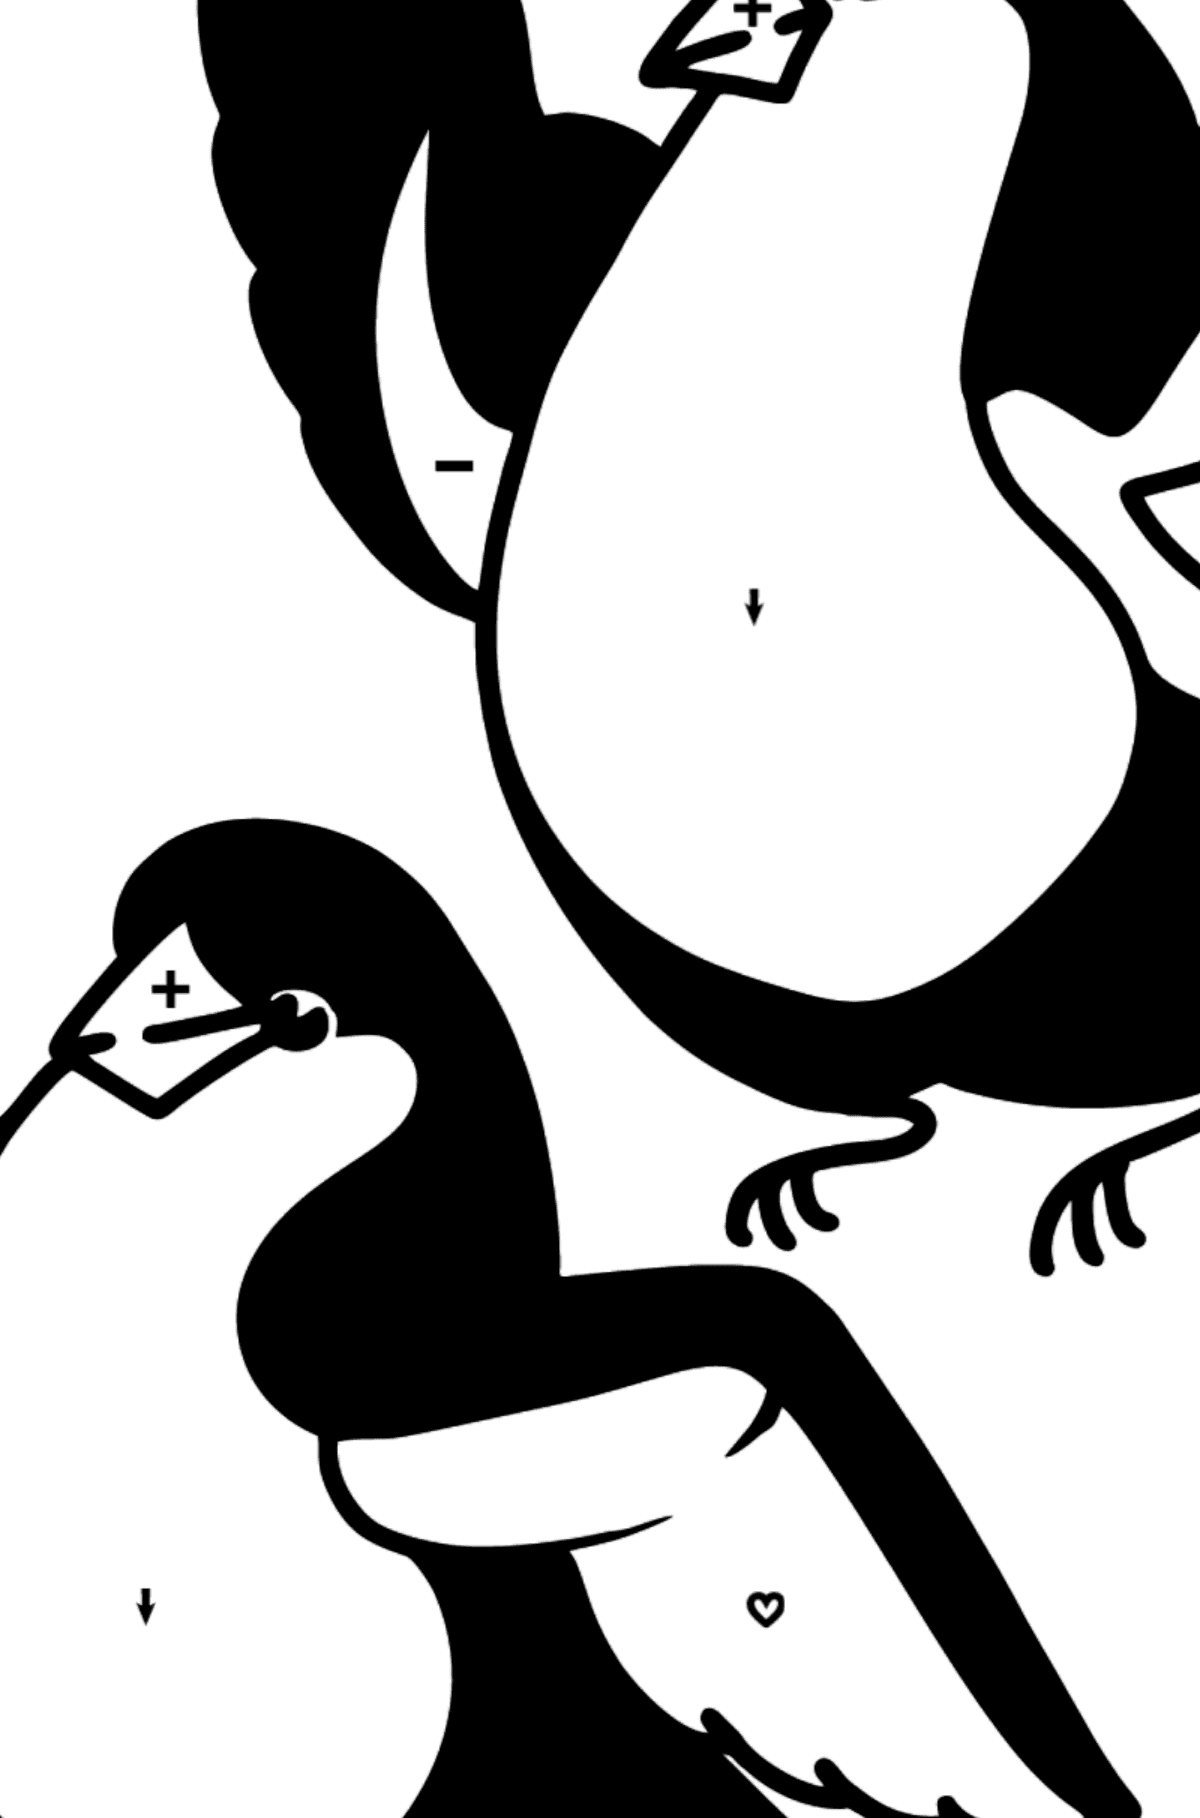 Bullfinches coloring page - Coloring by Symbols and Geometric Shapes for Kids